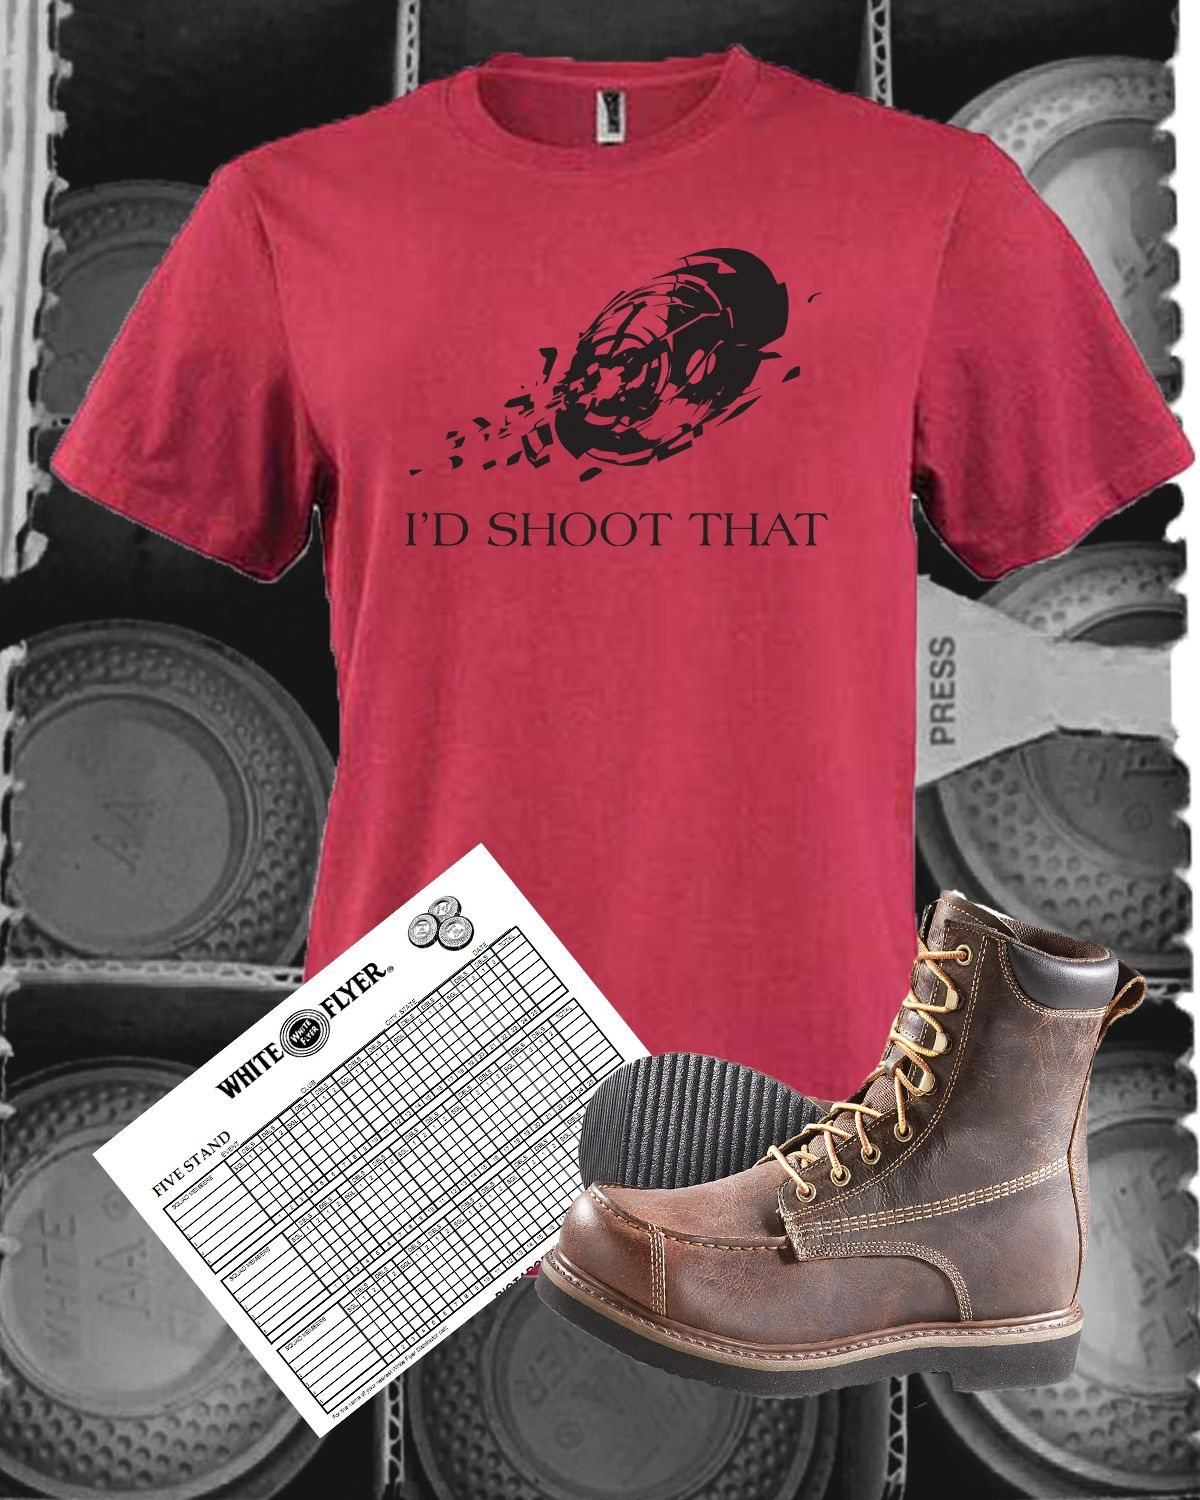 A perfect shirt for anyone into shooting trap, skeet, or